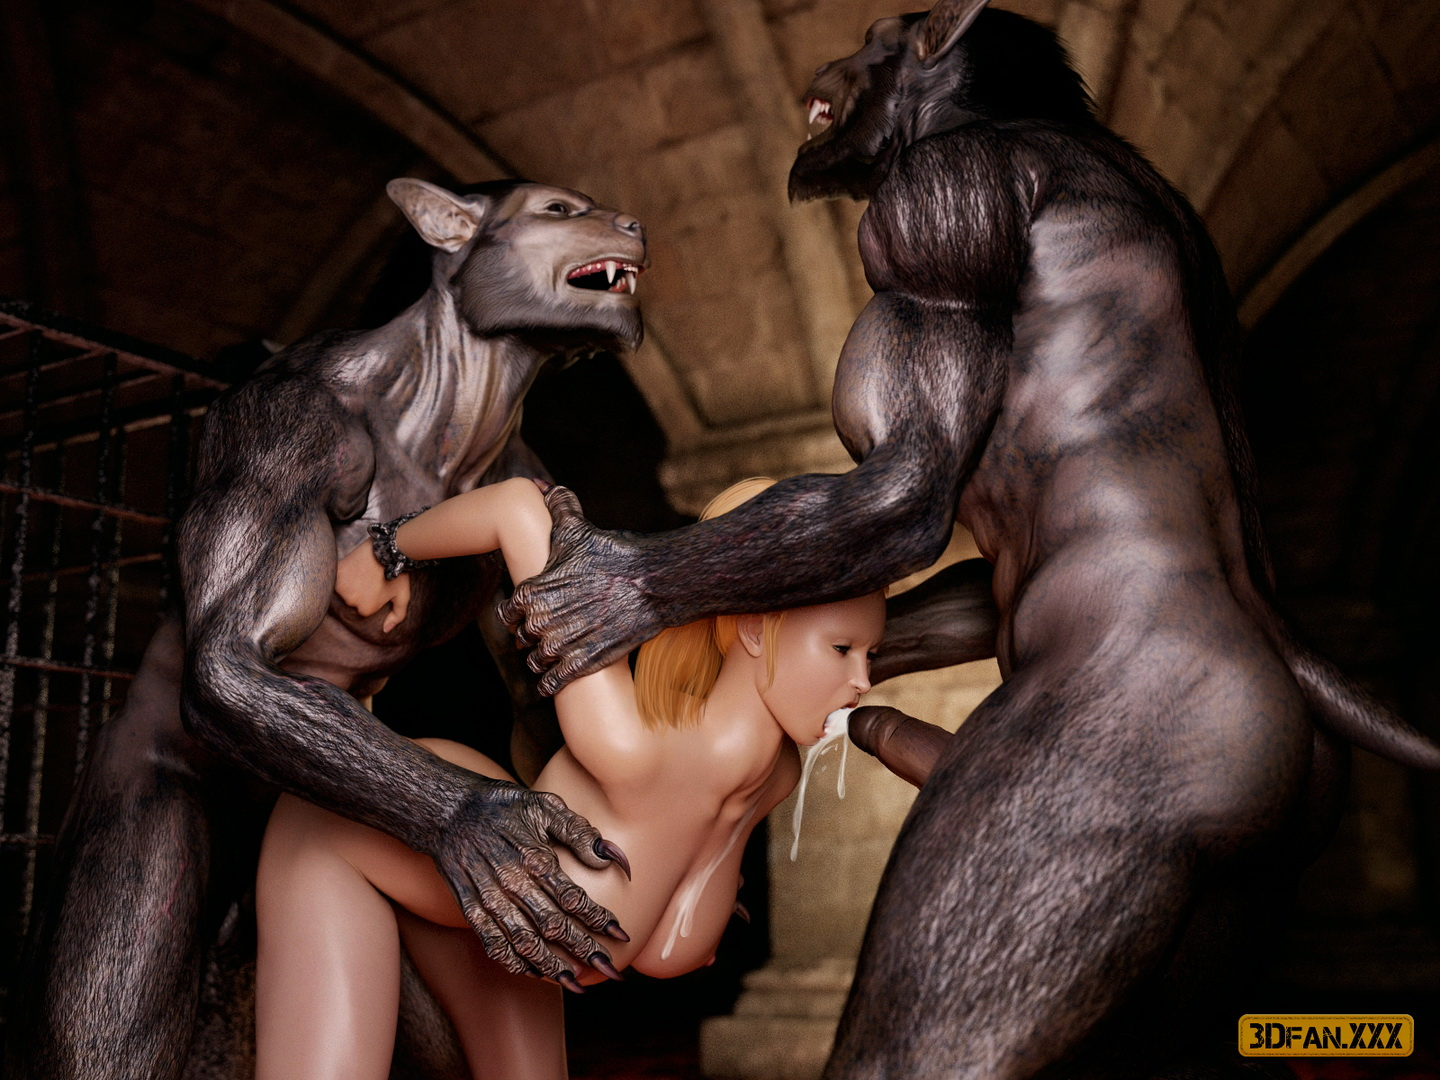 3d monster fucks girl porn photos porn films